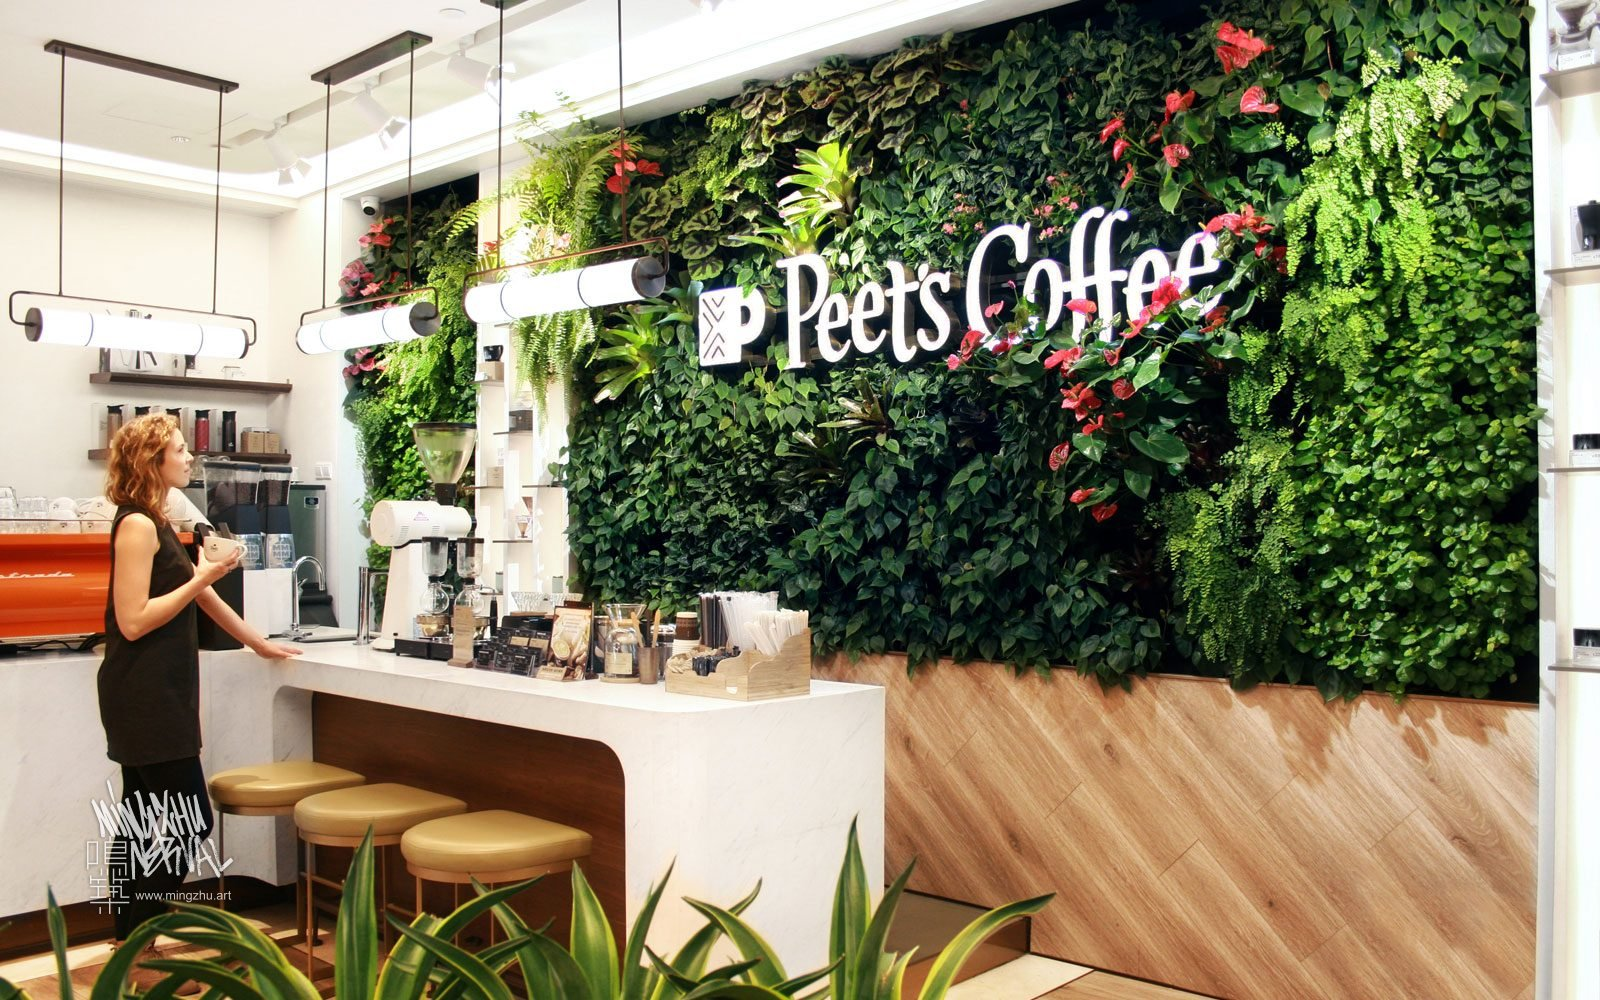 At Mingzhu Nerval, we thrive at creating the most beautiful vertical gardens in the world. For Peet's Coffee, we created a Californian living wall design – Shanghai, 2019.